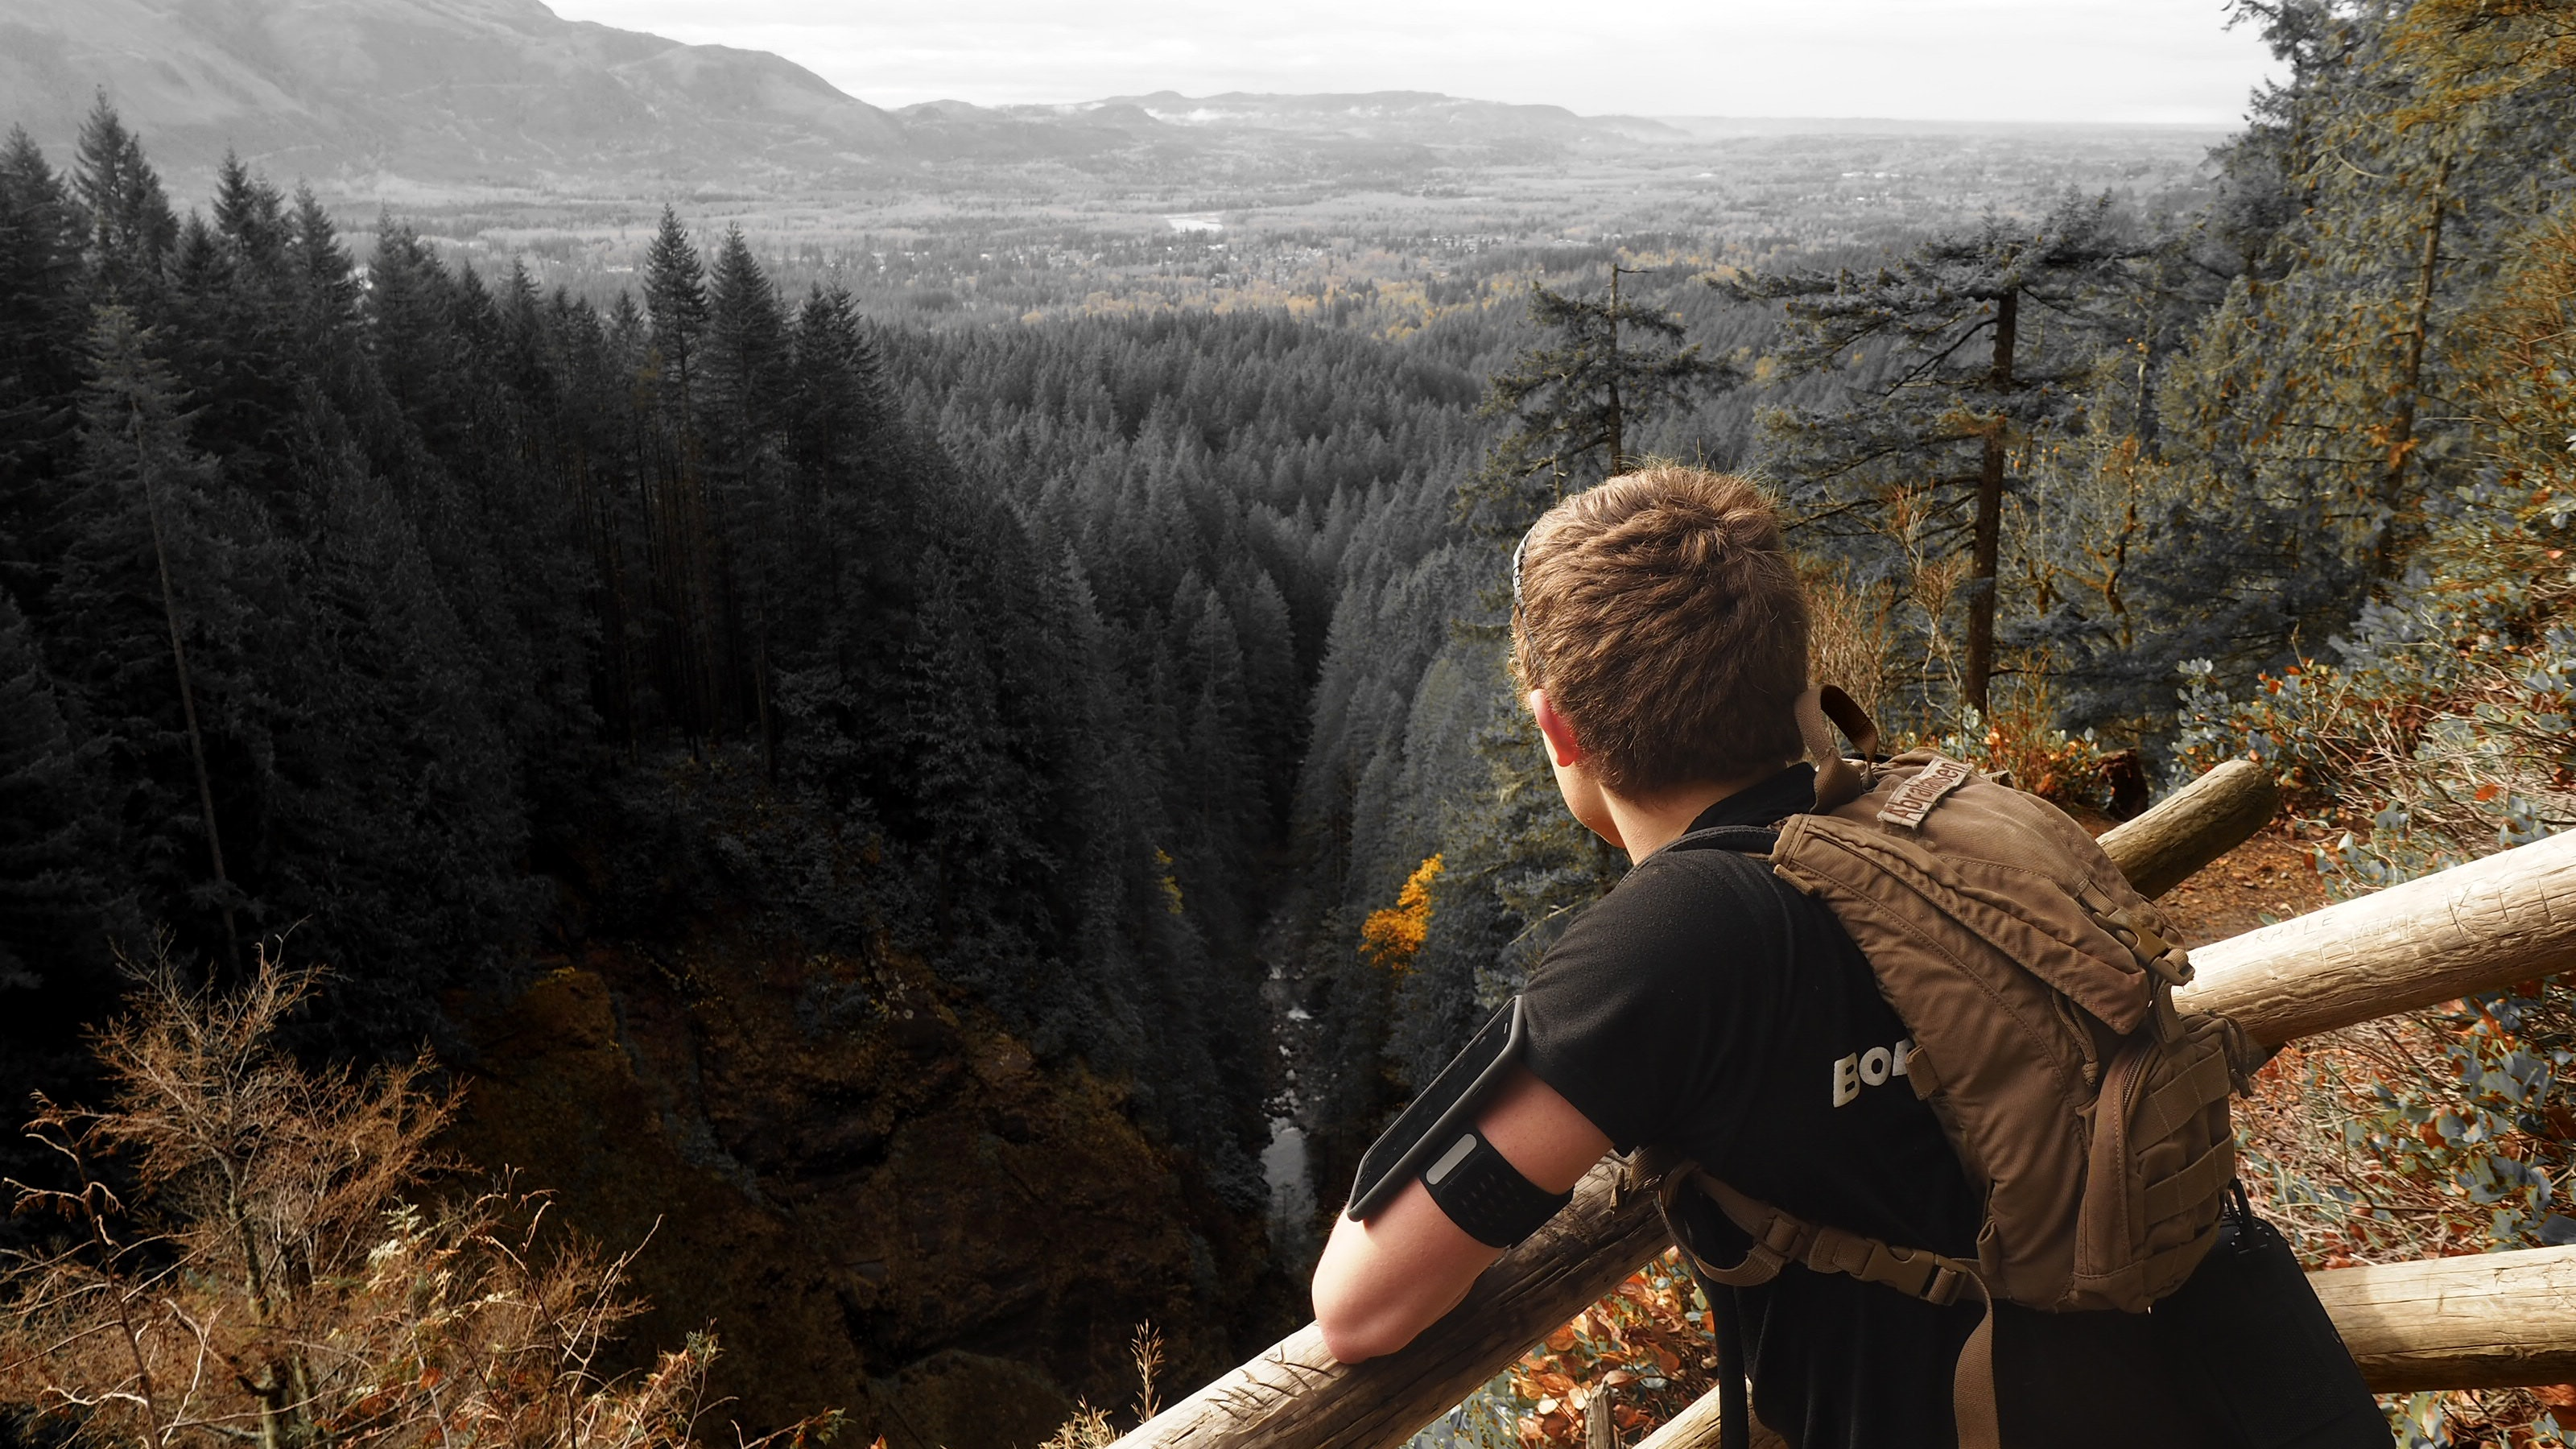 Man in Black Shirt and Brown Backpack Leaning on Brown Wooden Handrail Looking over Green Leaf Pine Trees and Creek, Backpack, Park, View deck, View, HQ Photo